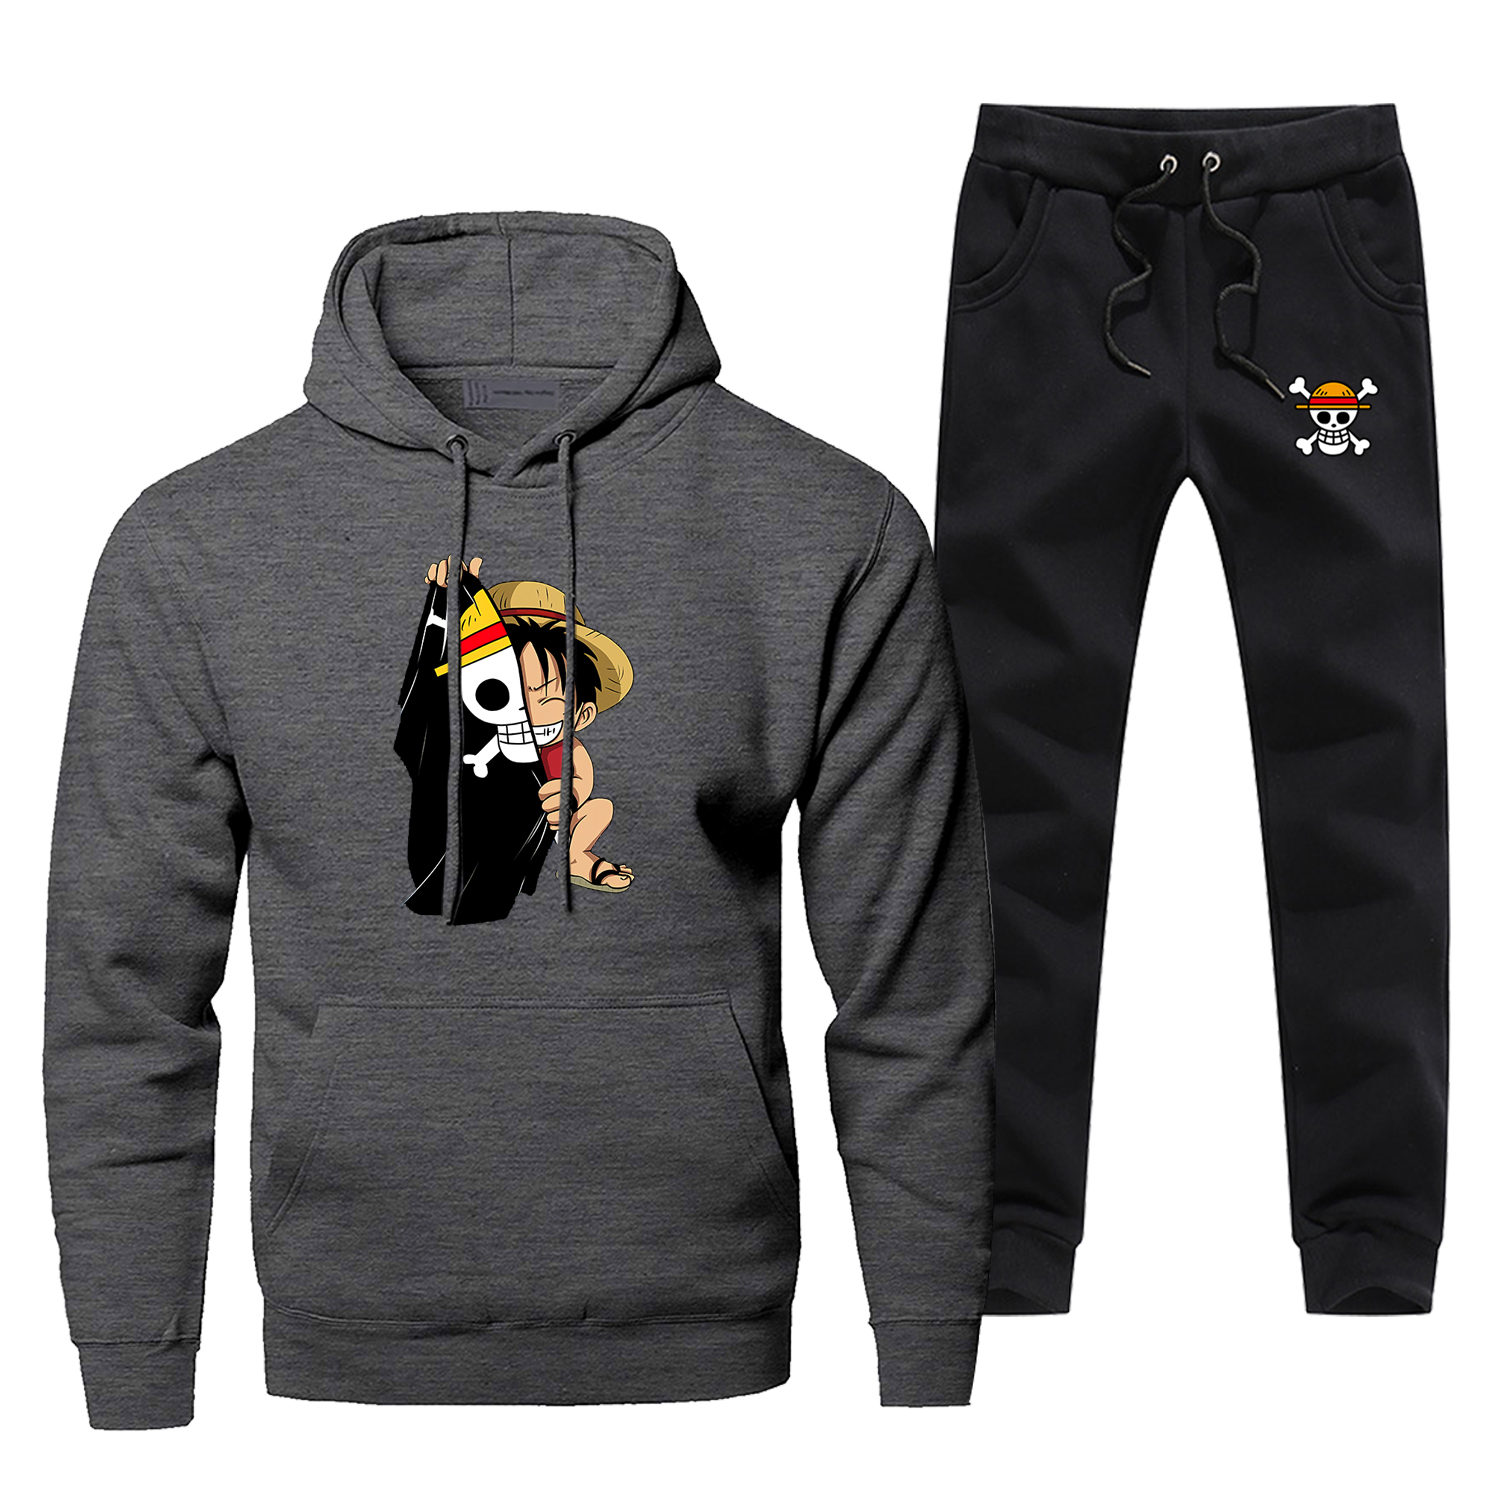 One Peice Monkey D Luffy Flage Men's Jogging 2019 Winter 2 Piece Set Japan Anime Harajuku Men's Sets Fleece Casual Warm Hoodies